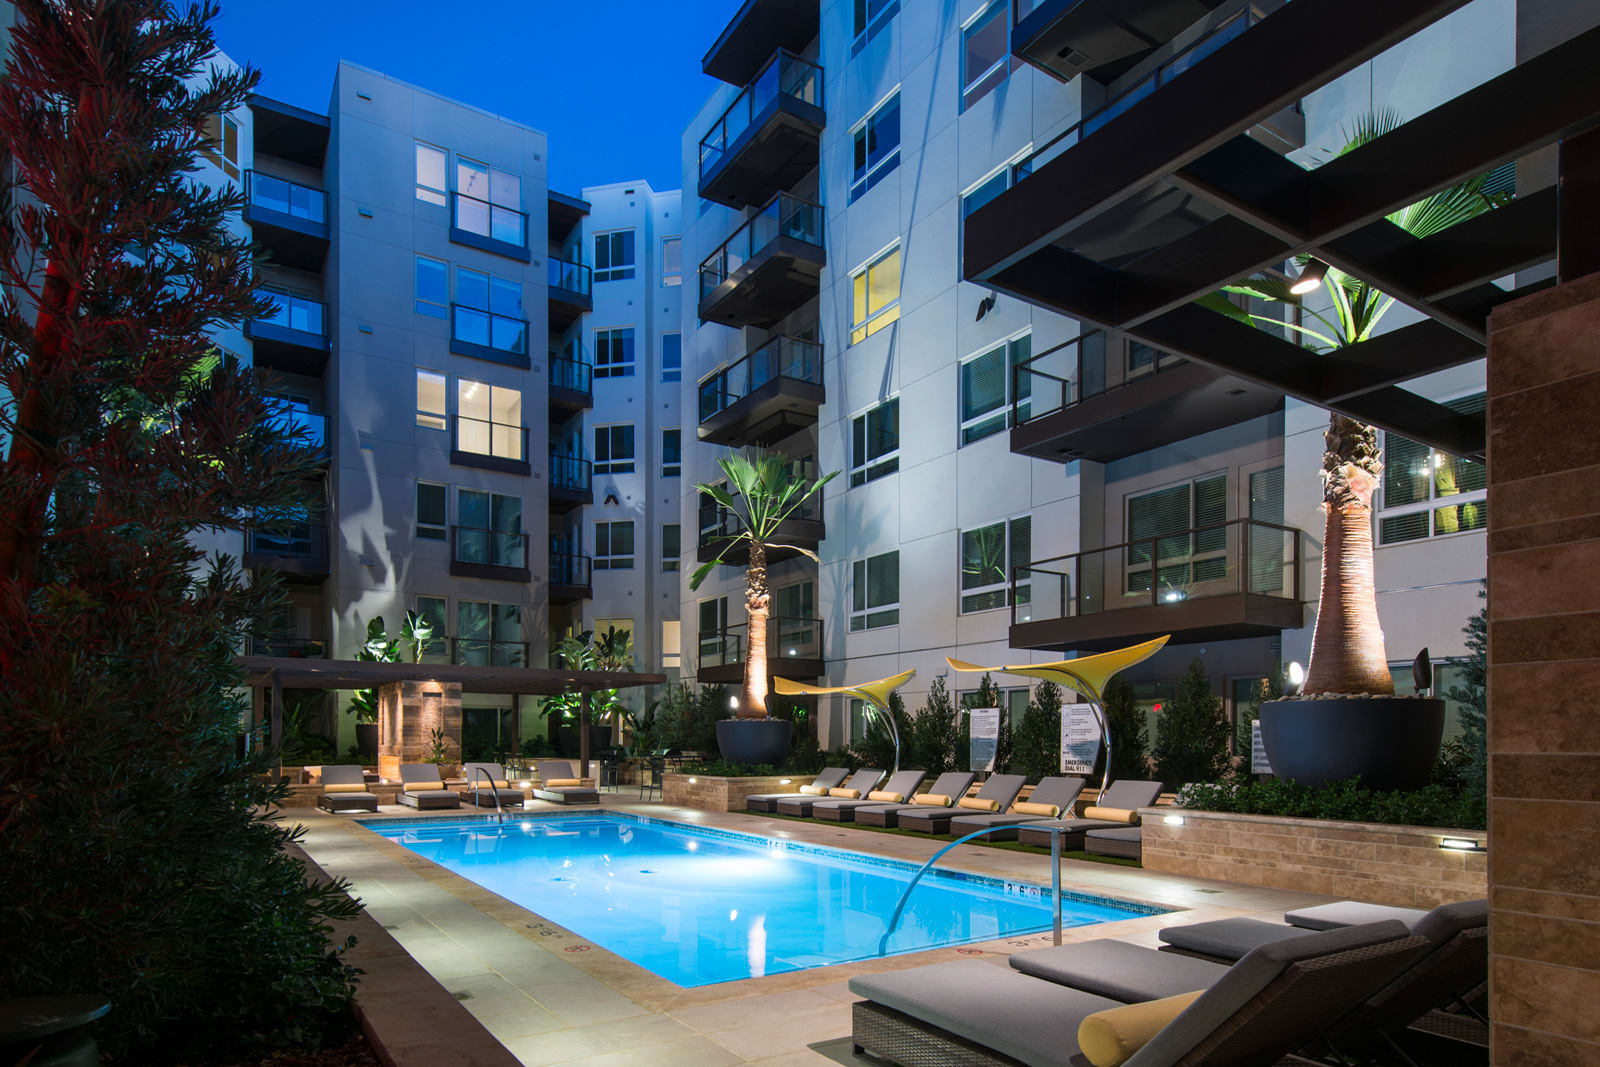 Resort-Style Pool at 1000 Grand by Windsor, 1000 S Grand Ave, Los Angeles